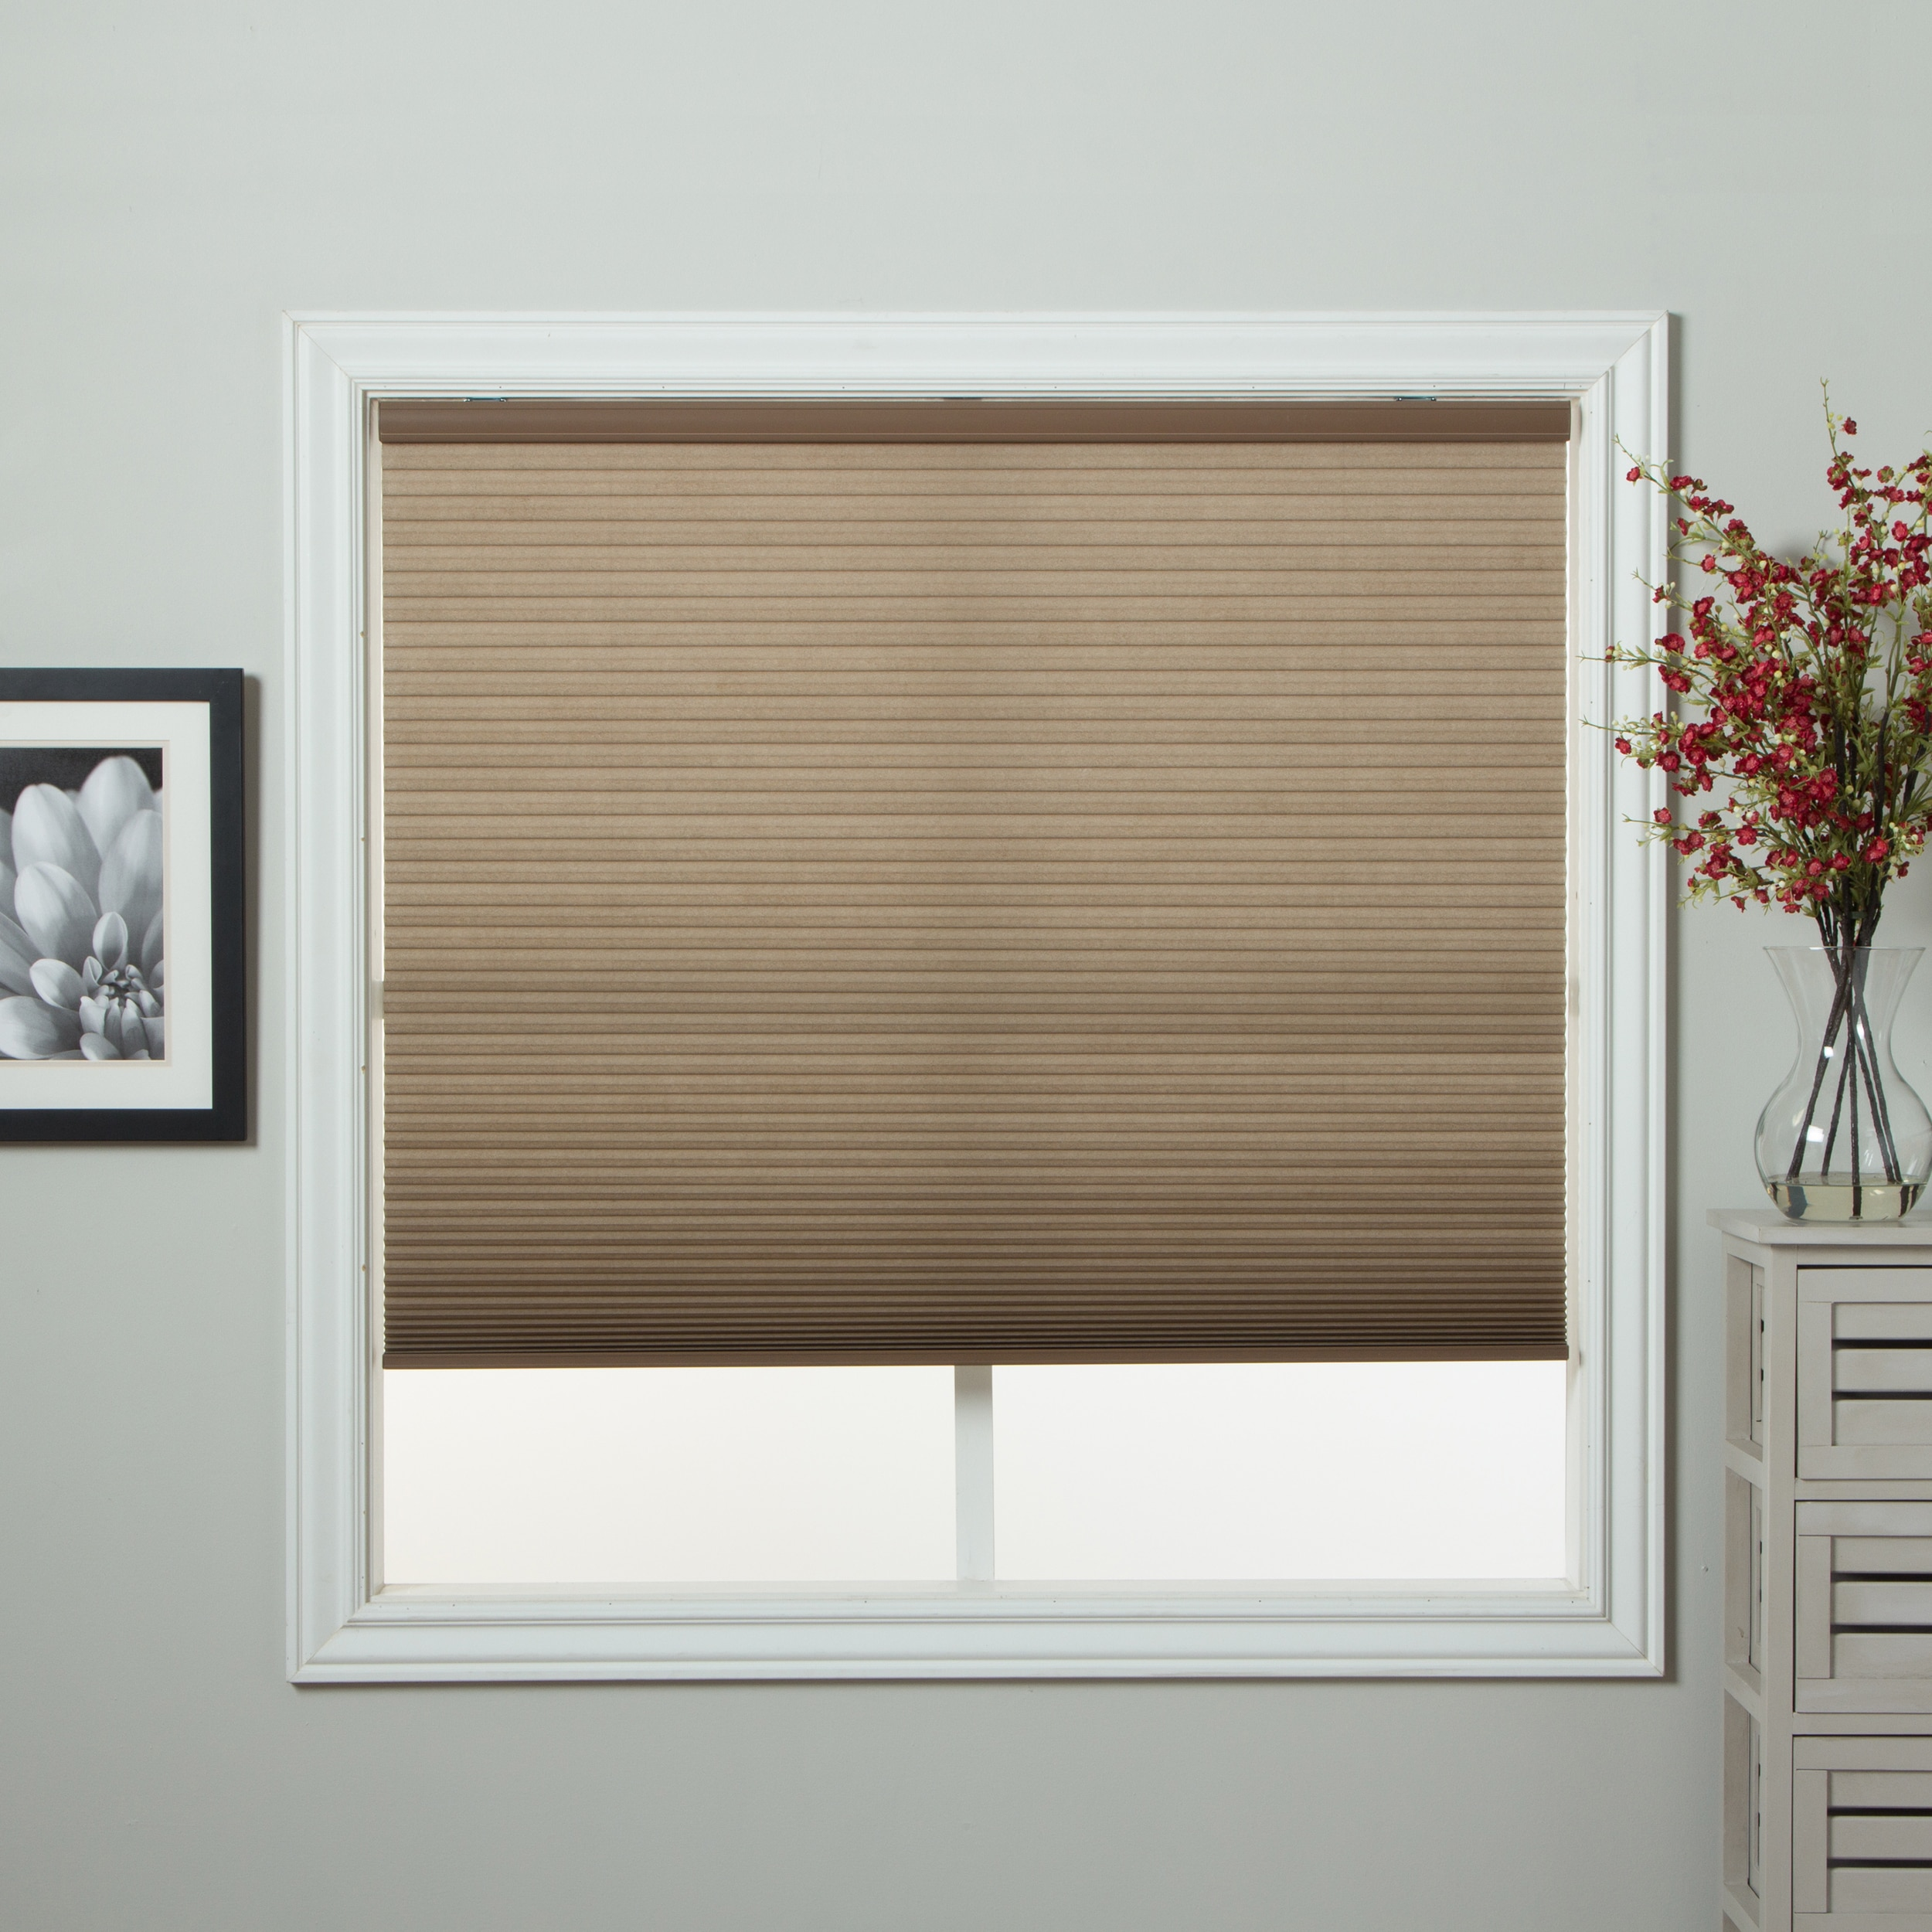 E Screen Blinds Buy Arlo Blinds Online At Overstock Our Best Window Treatments Deals